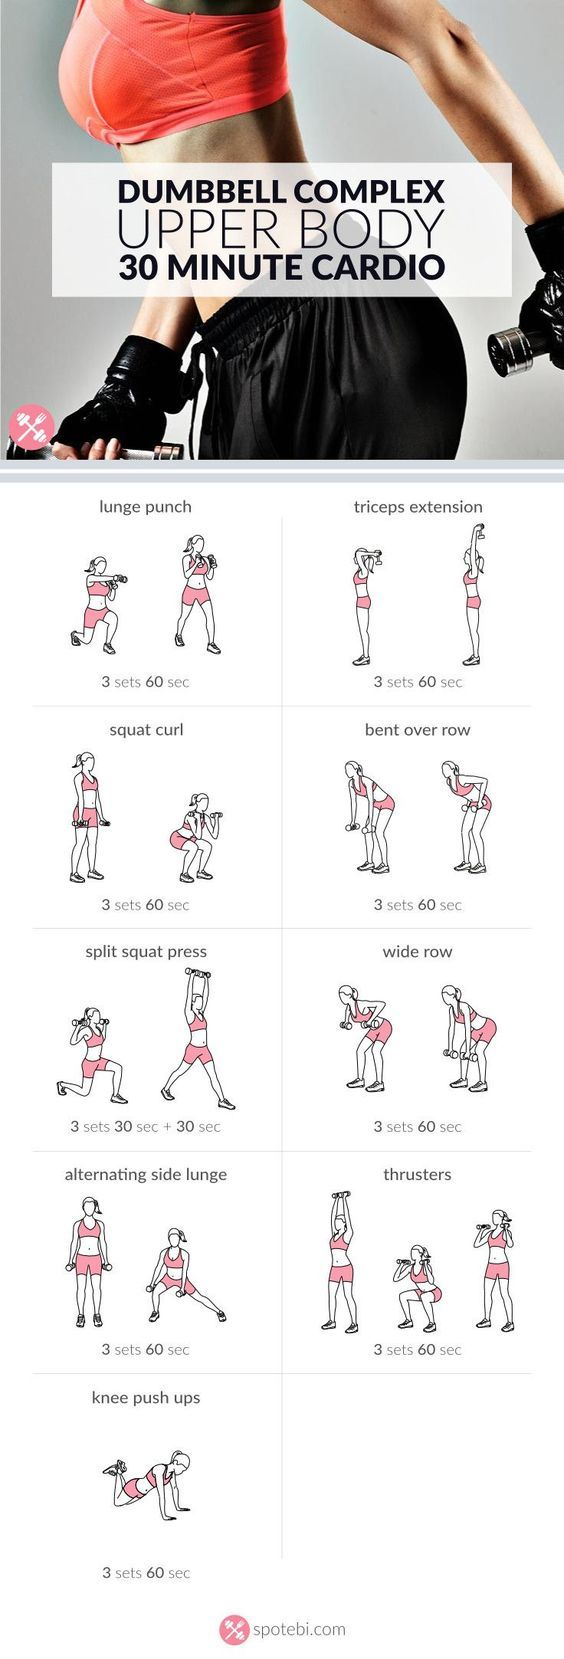 Best ideas about dumbbell workout on pinterest